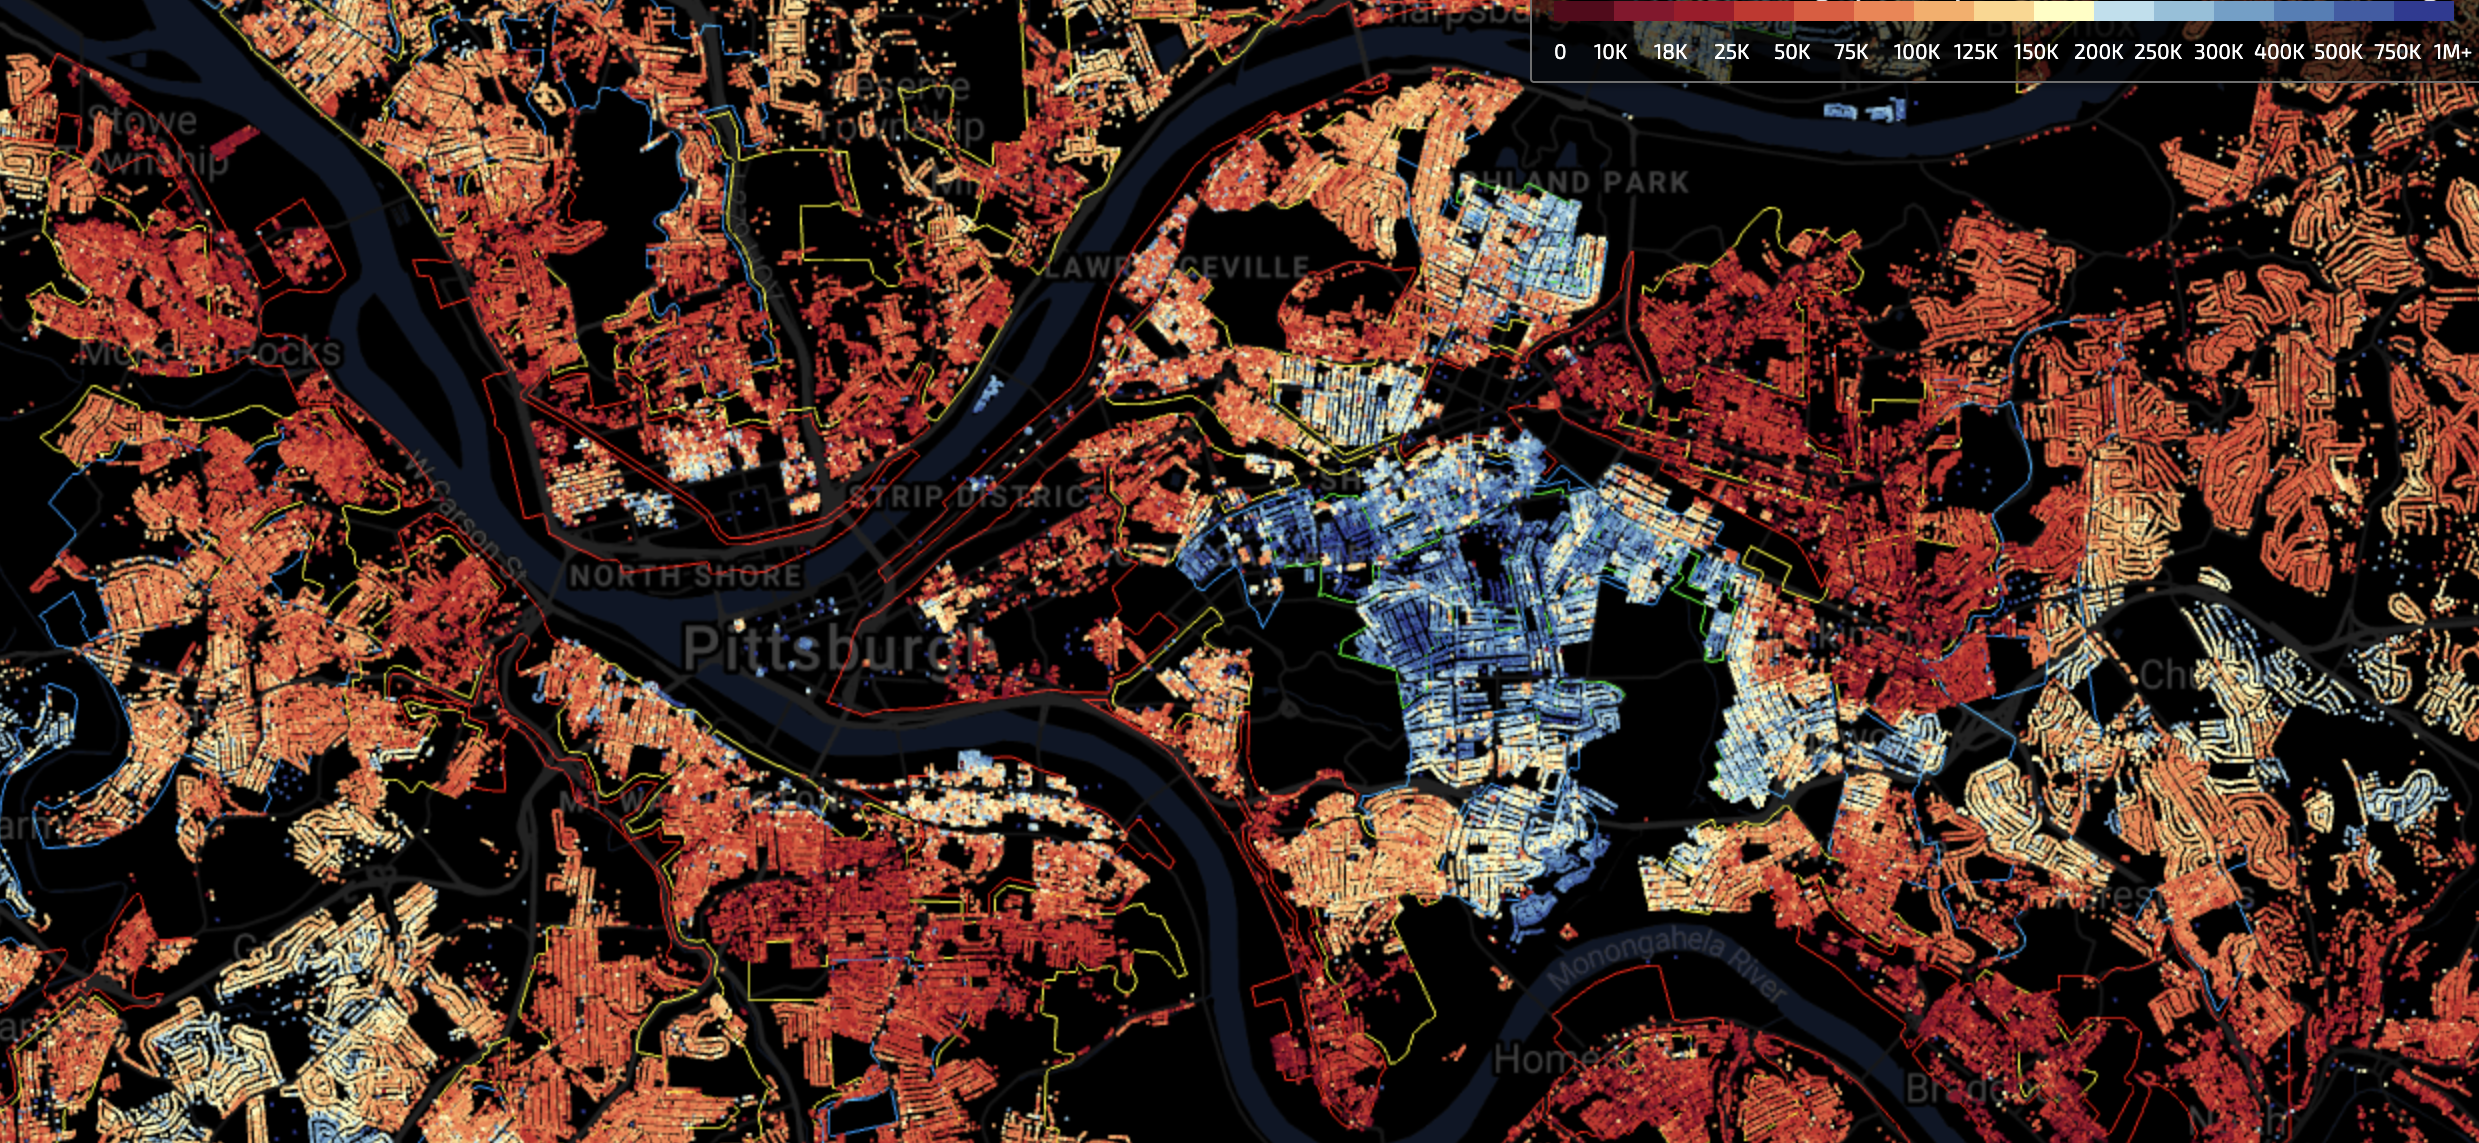 A map showing the median property values of houses in Pittsburgh delineated against school district boundaries. Red indicates low values, blue indicates high values. (credit: Courtesy of EarthTime)